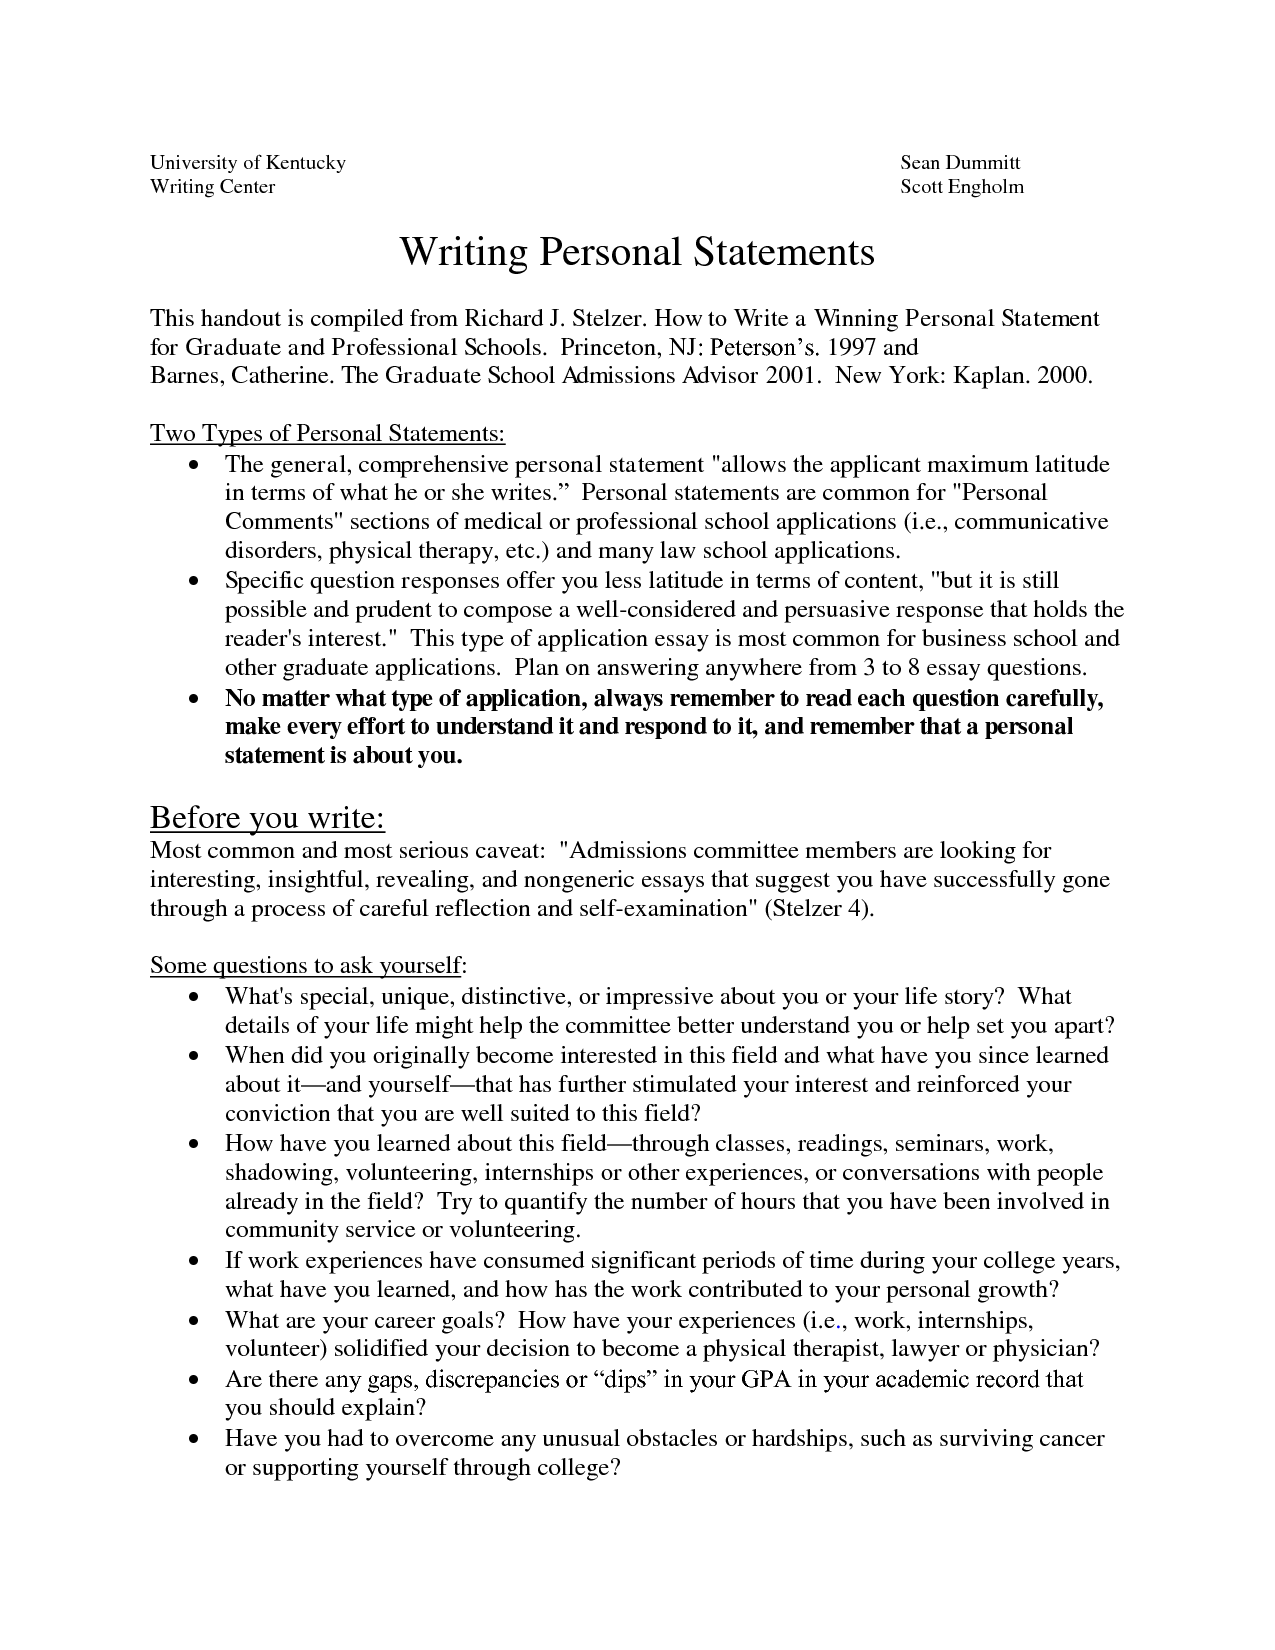 how to write a professional personal statement custom writing how to write a professional personal statement